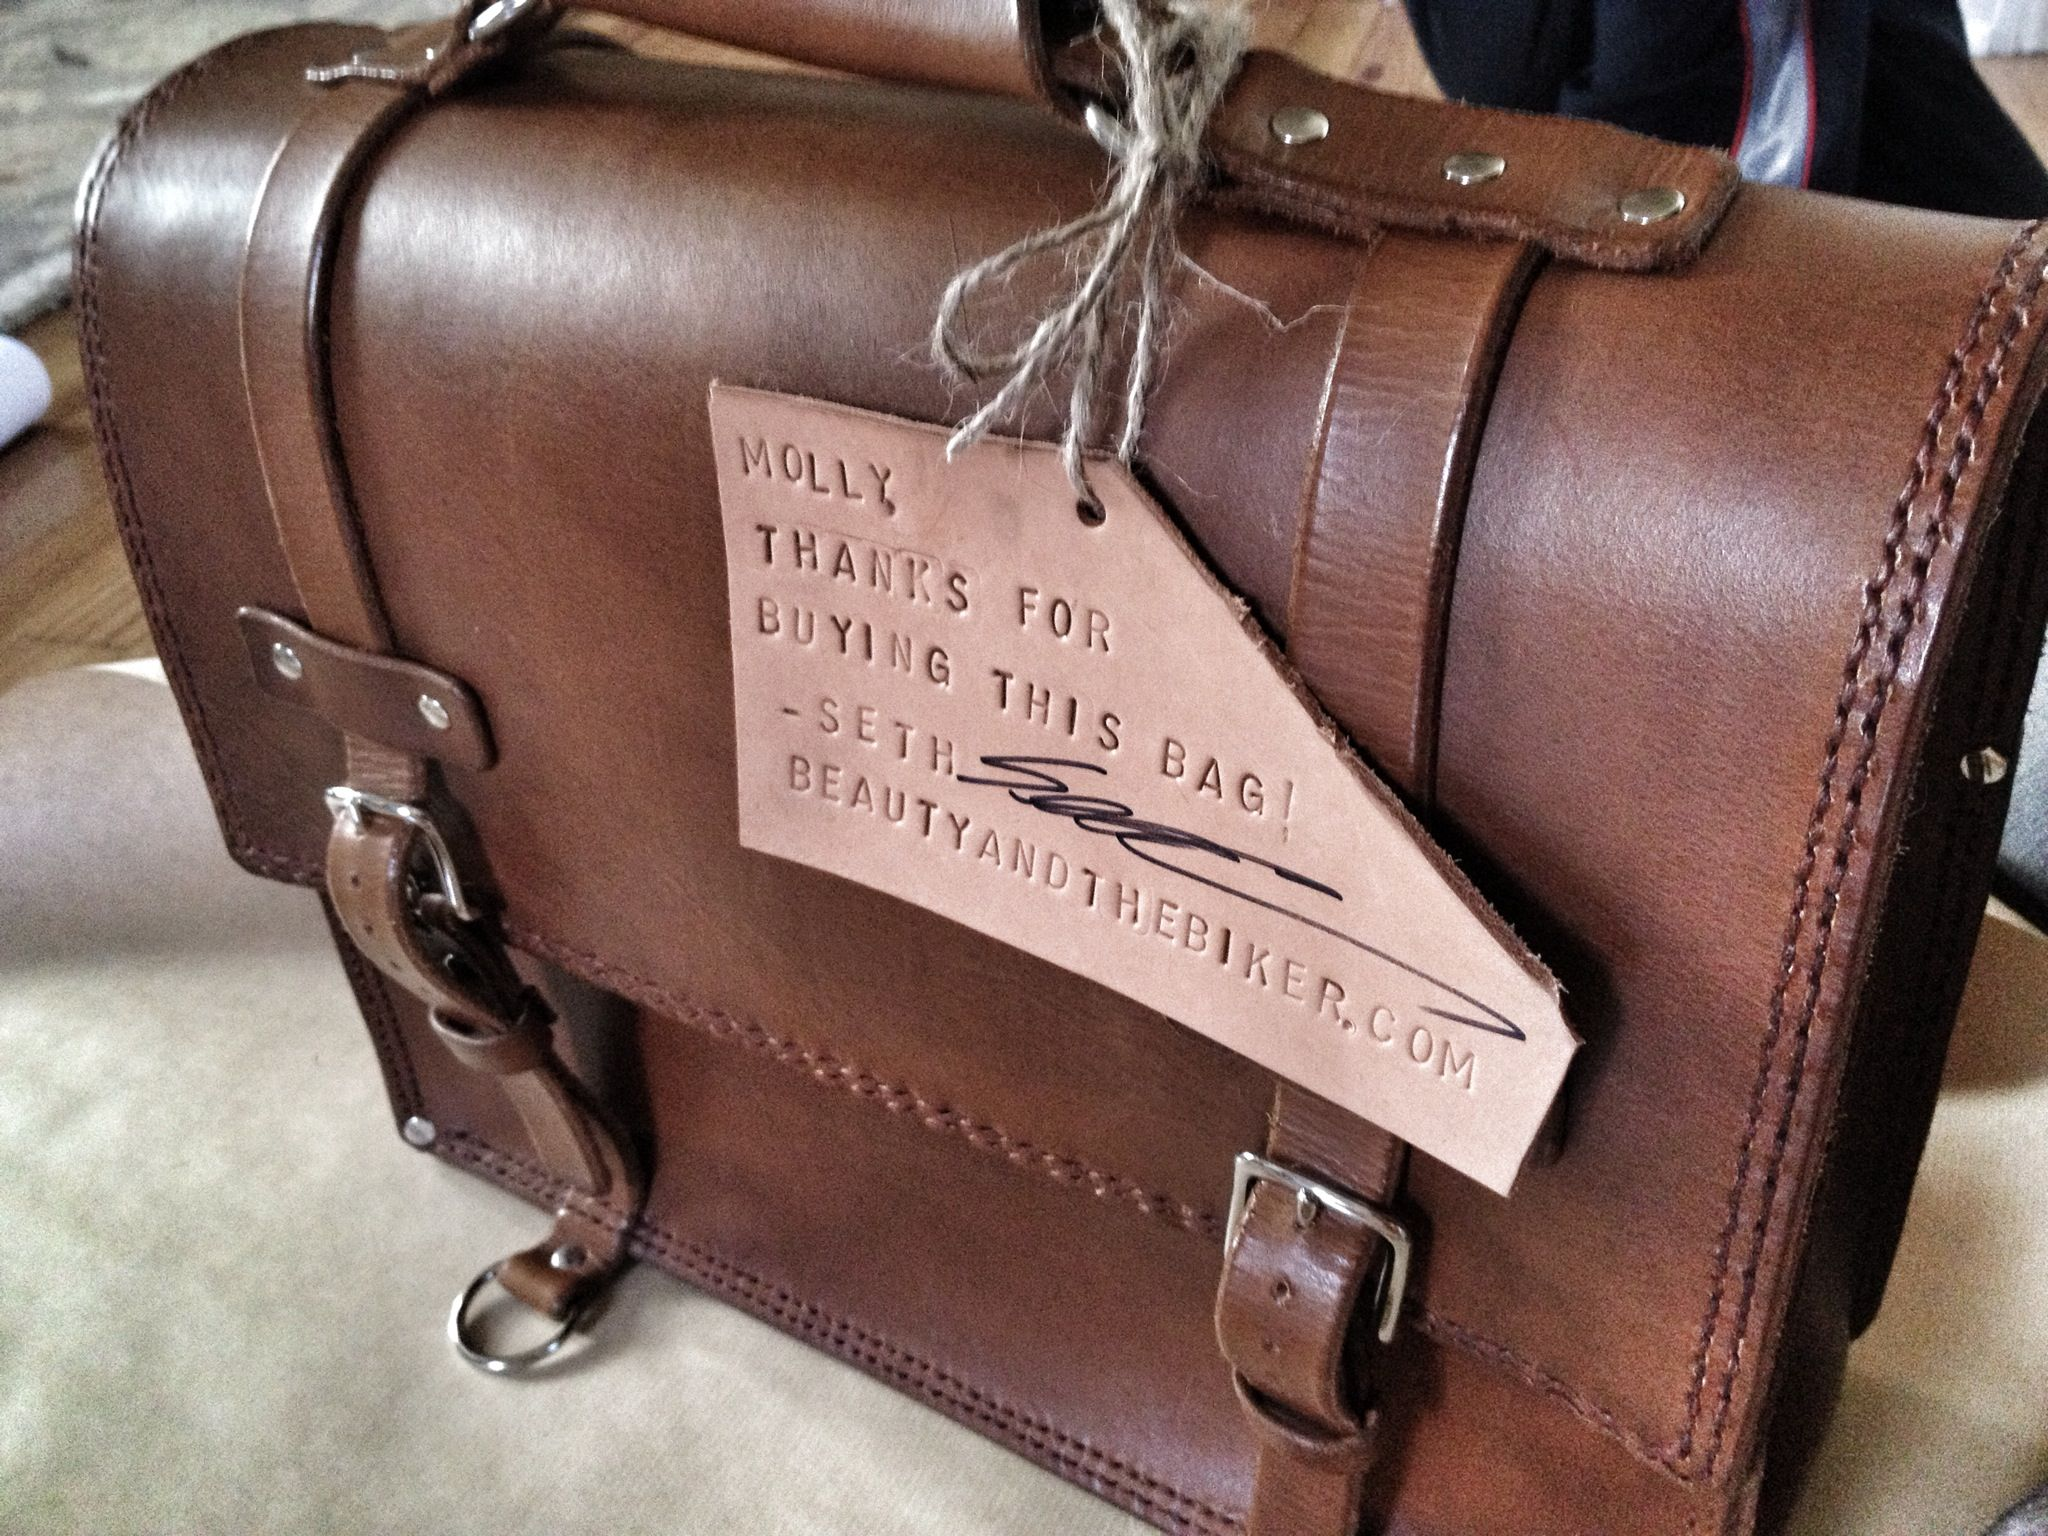 Handmade Leather Bags Are Hard Work - Beauty and the Biker | Shoes ...